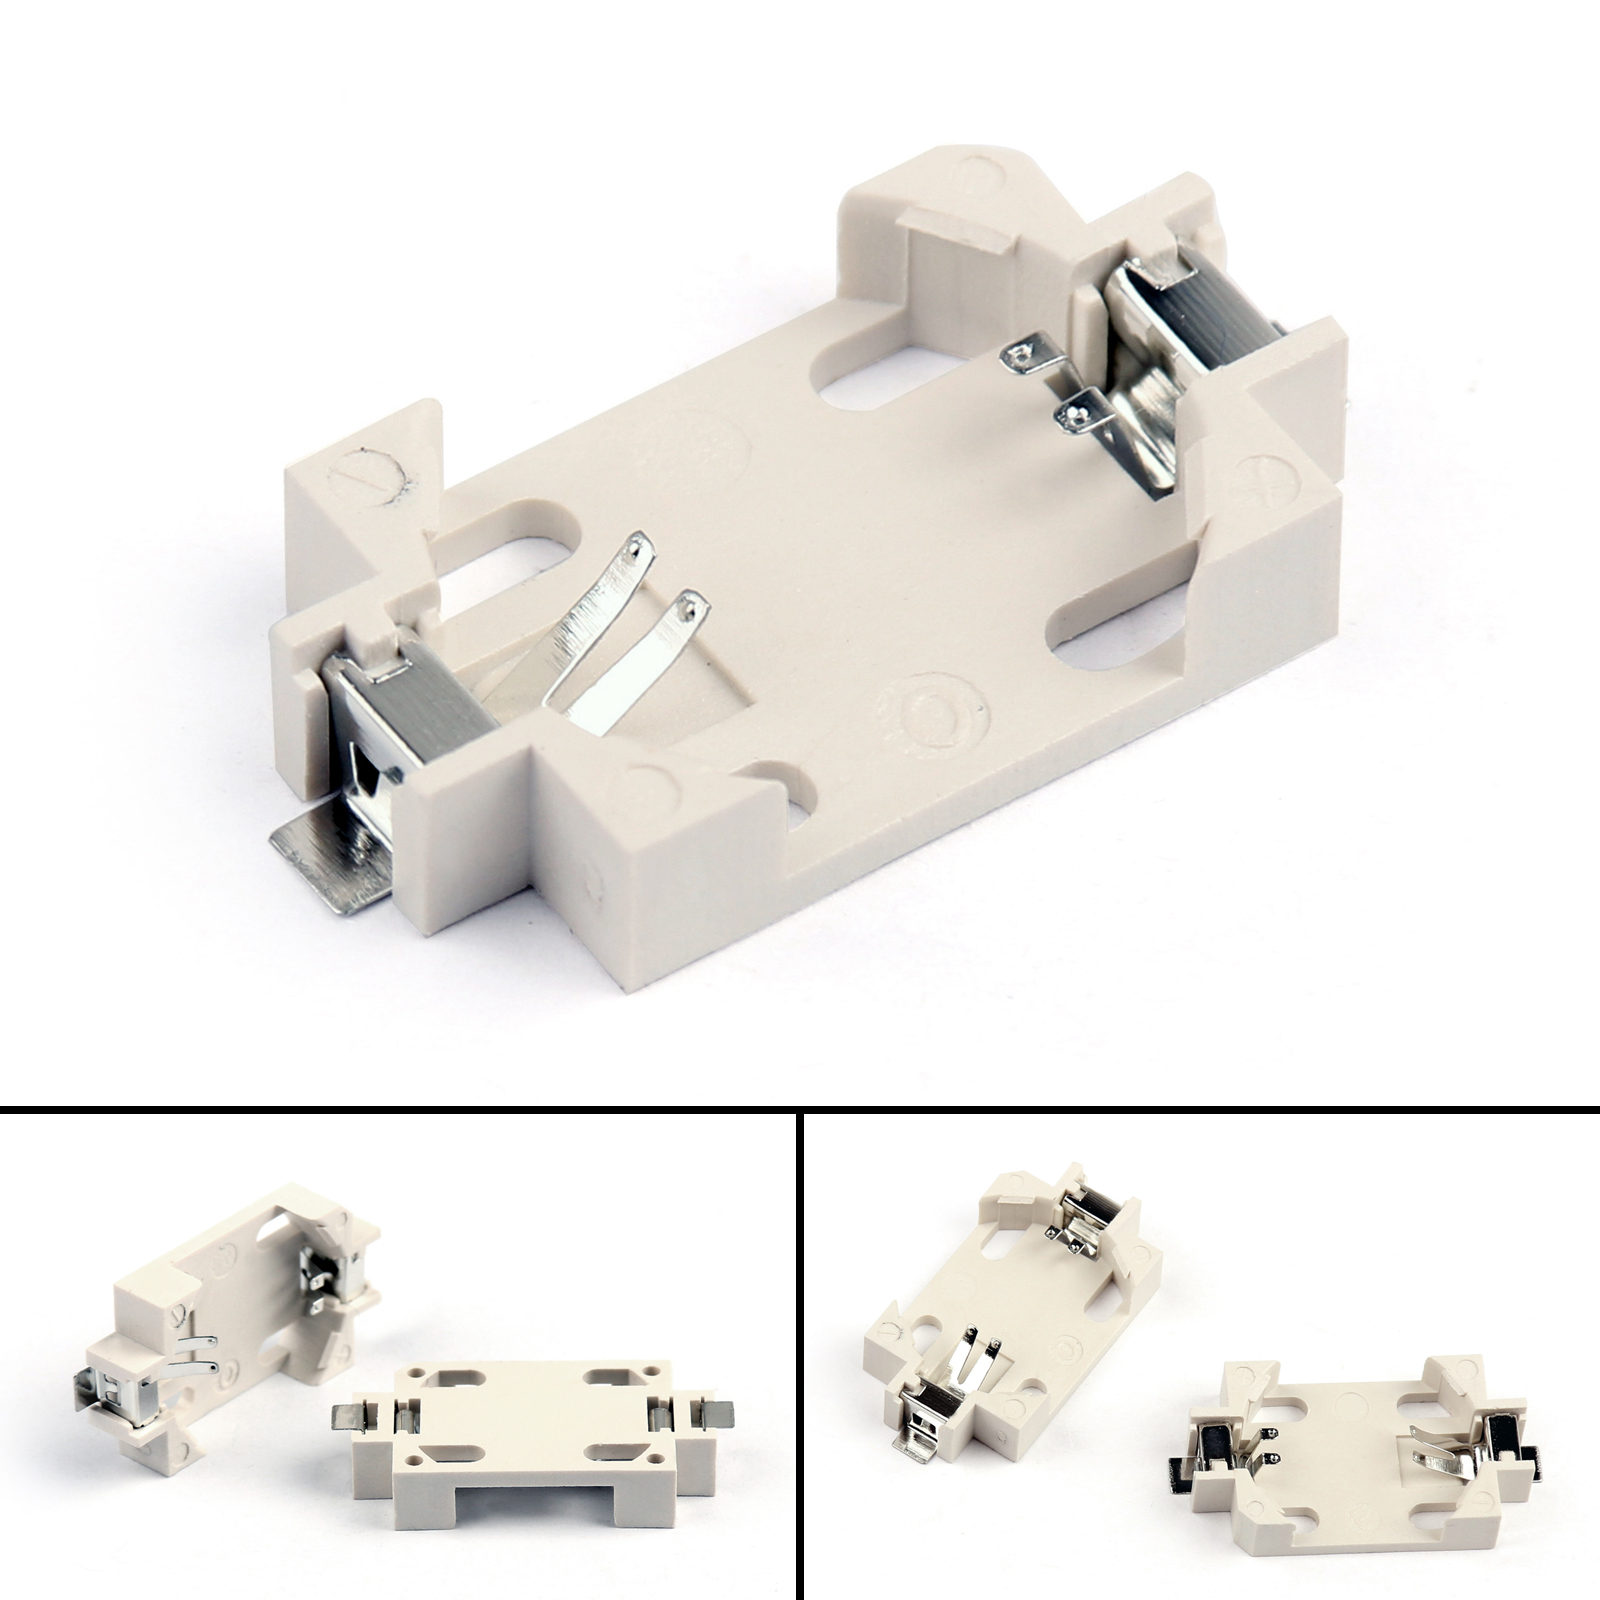 Details about 5Pcs BS-6 Cell CR2032 SMD Battery Holder Case Box Tin Plating  Surface Mount UE